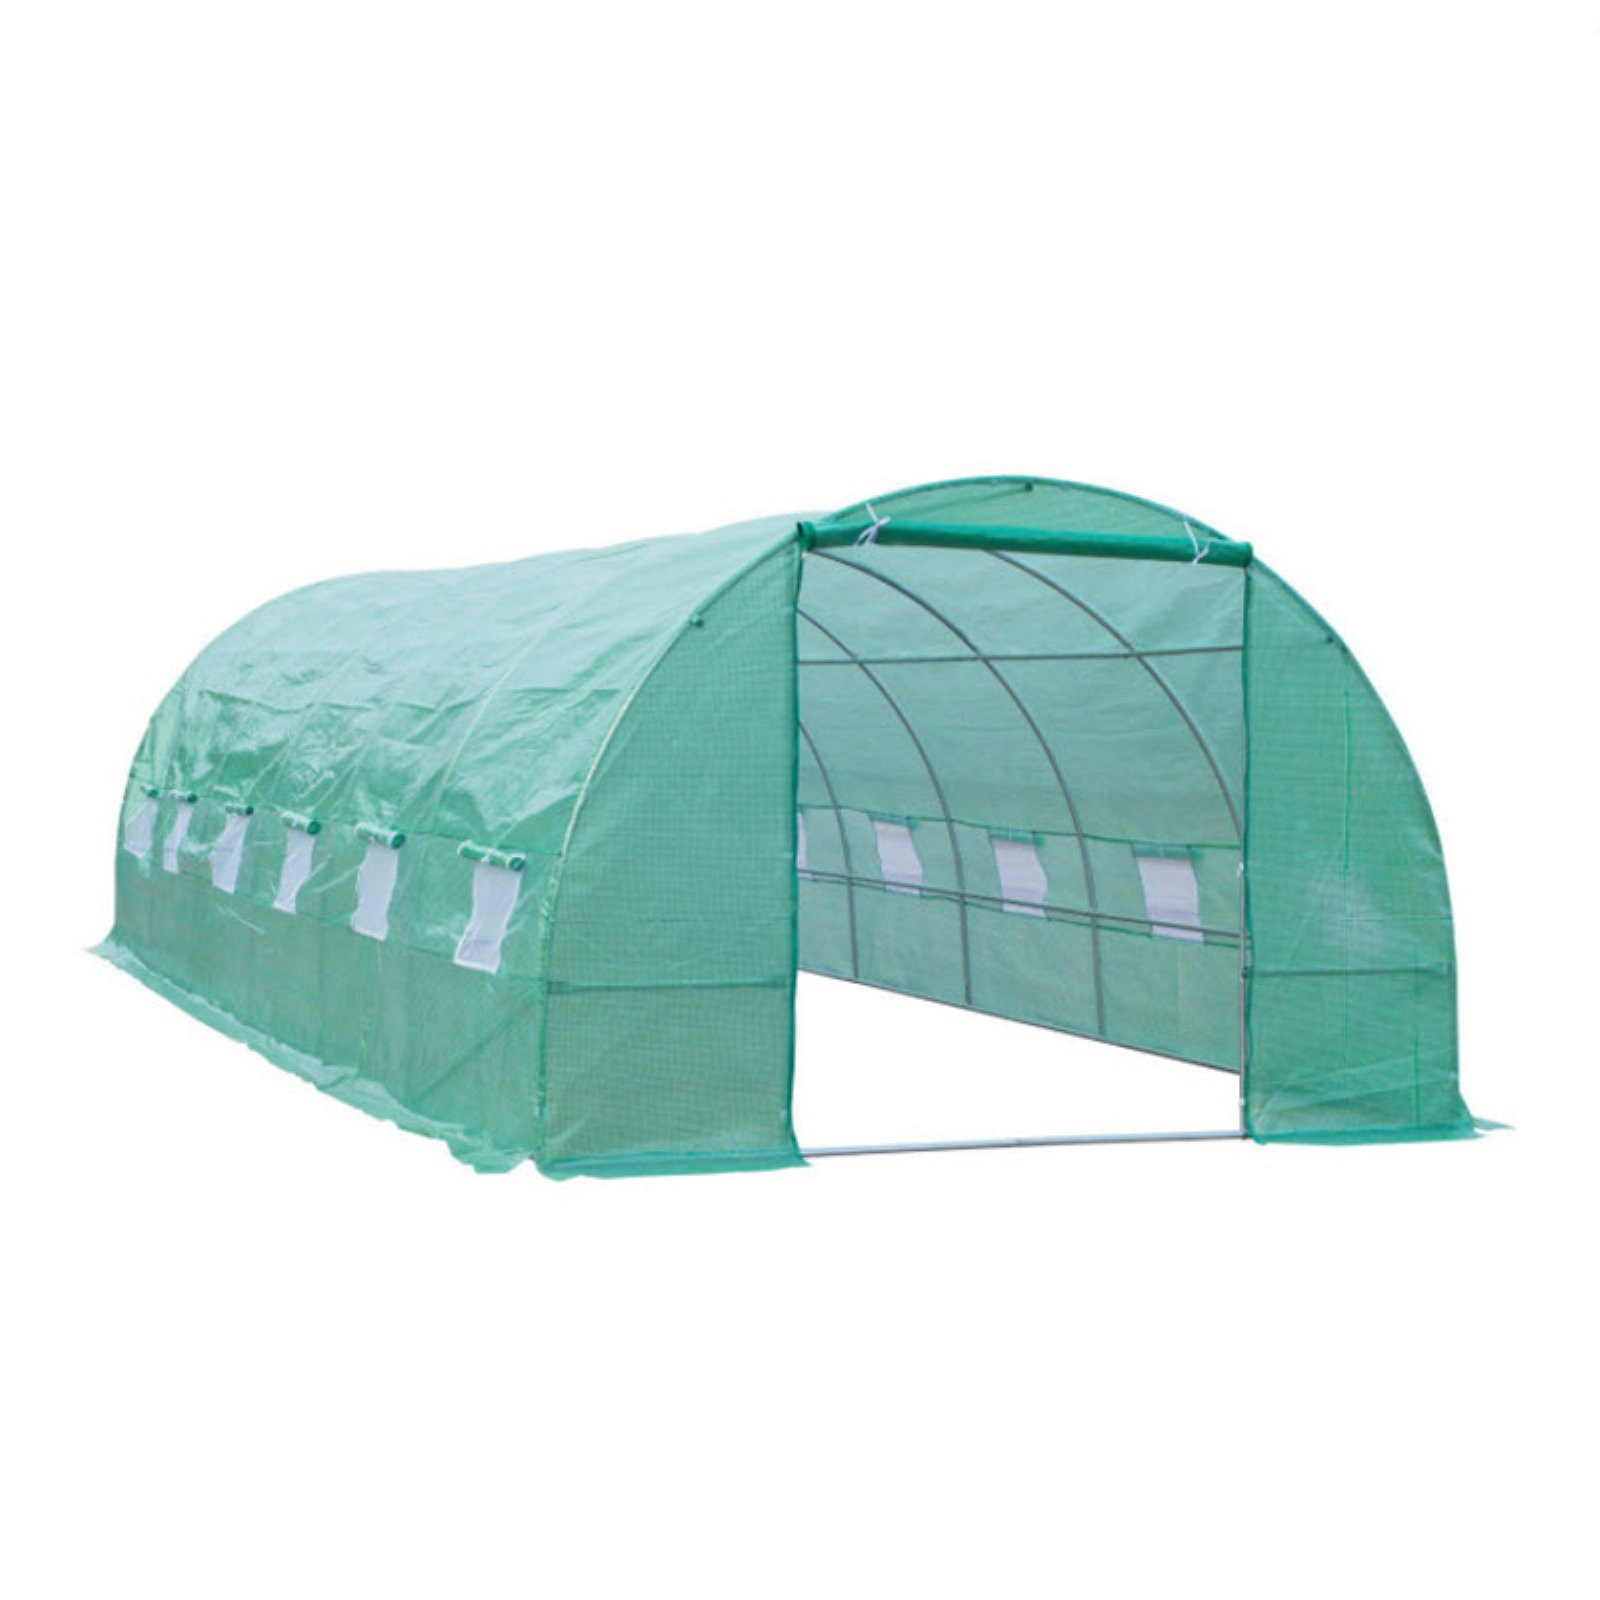 Outsunny Portable 26 x 10 ft. Walk-In Garden Greenhouse by Aosom